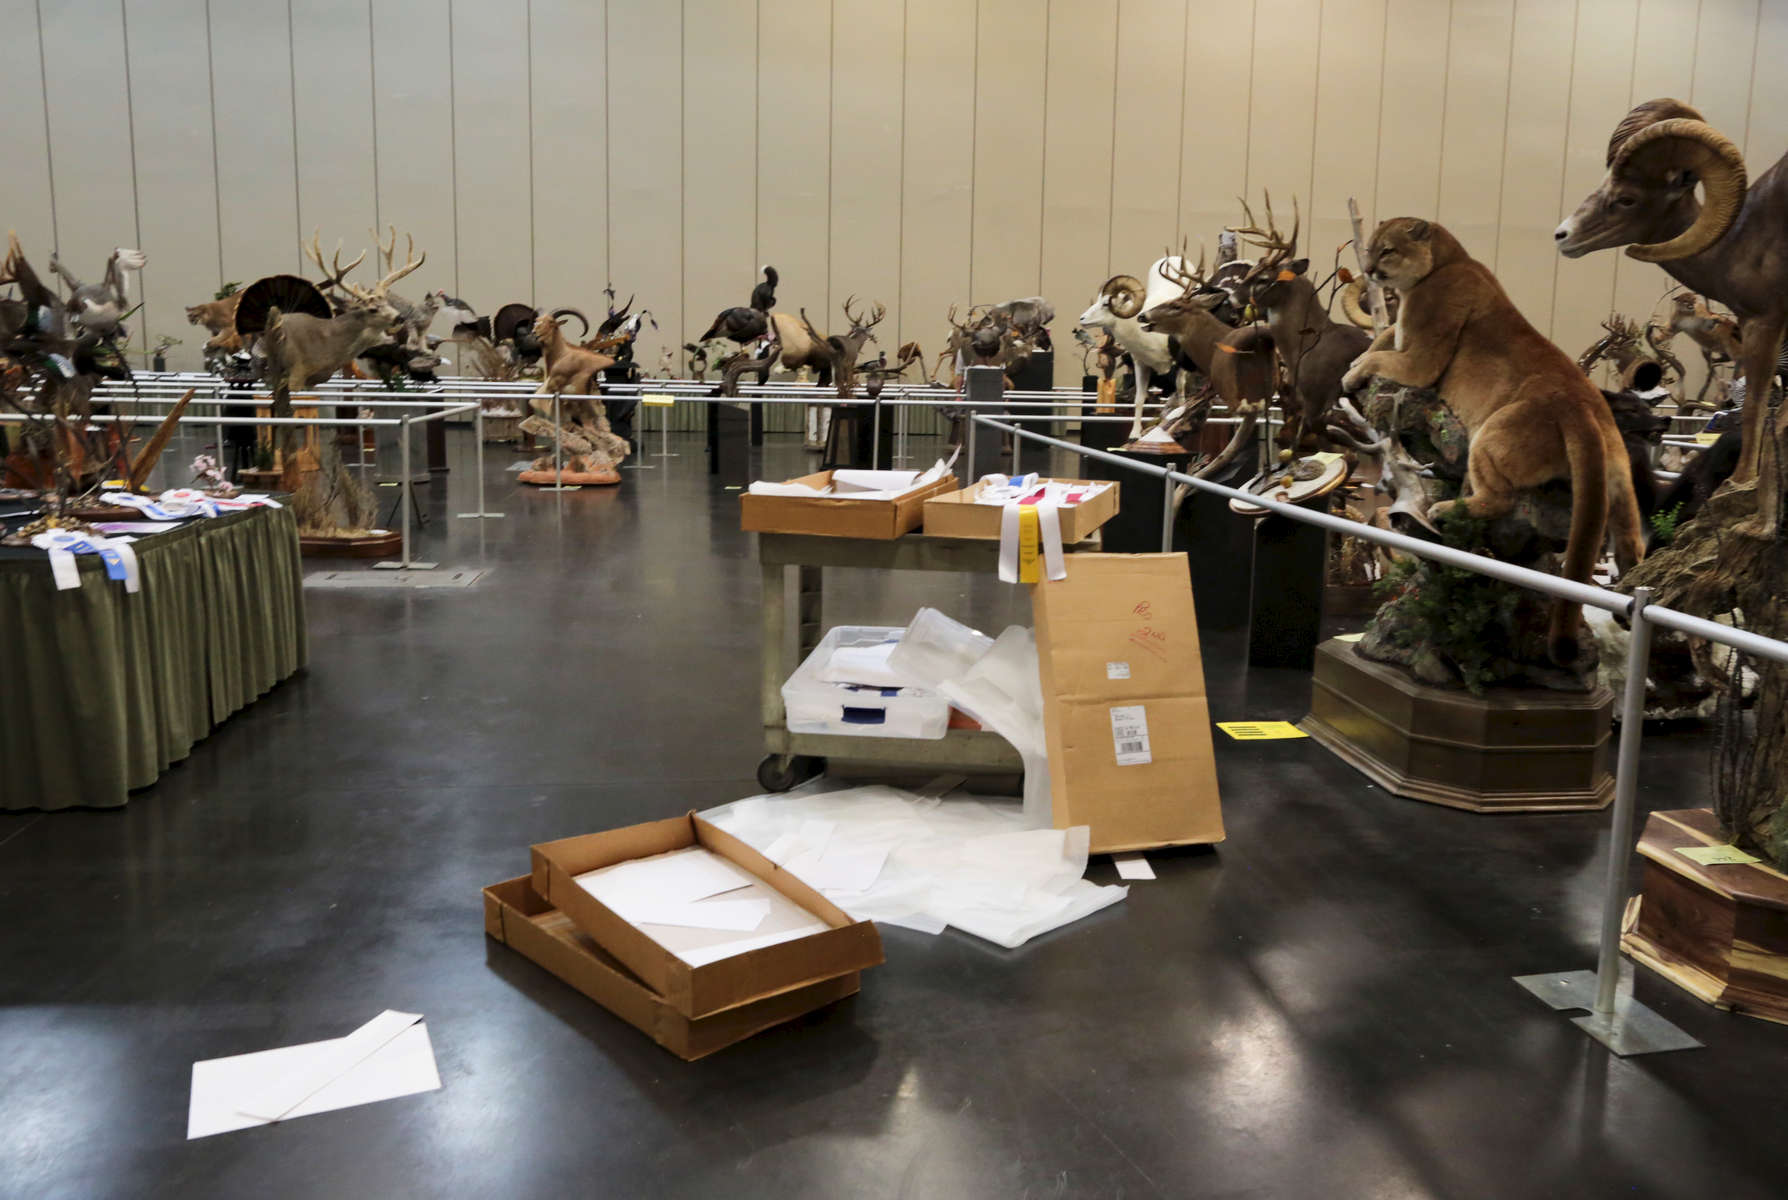 Winning ribbons, waiting to be distributed, at the end of the competition during to the World Taxidermy & Fish Carving Championships, in Springfield, Missouri on May 3, 2019.